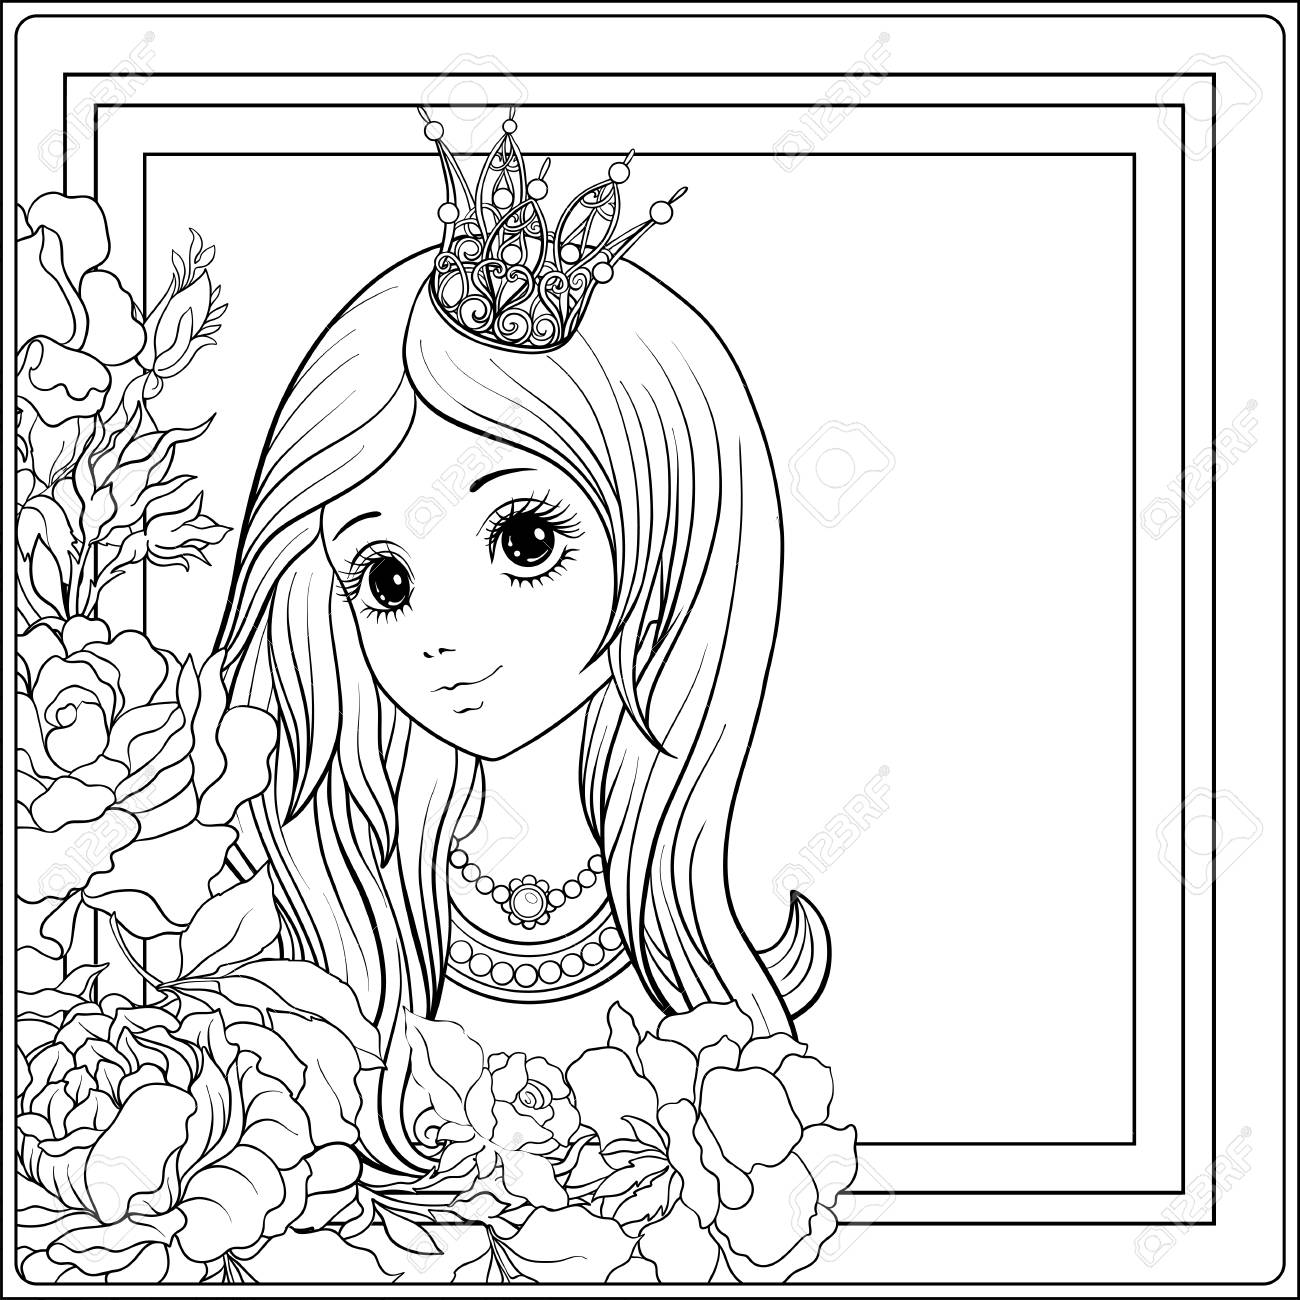 1300x1300 Young Nice Girl In Princess Crown In The Garden Of Roses. Outline